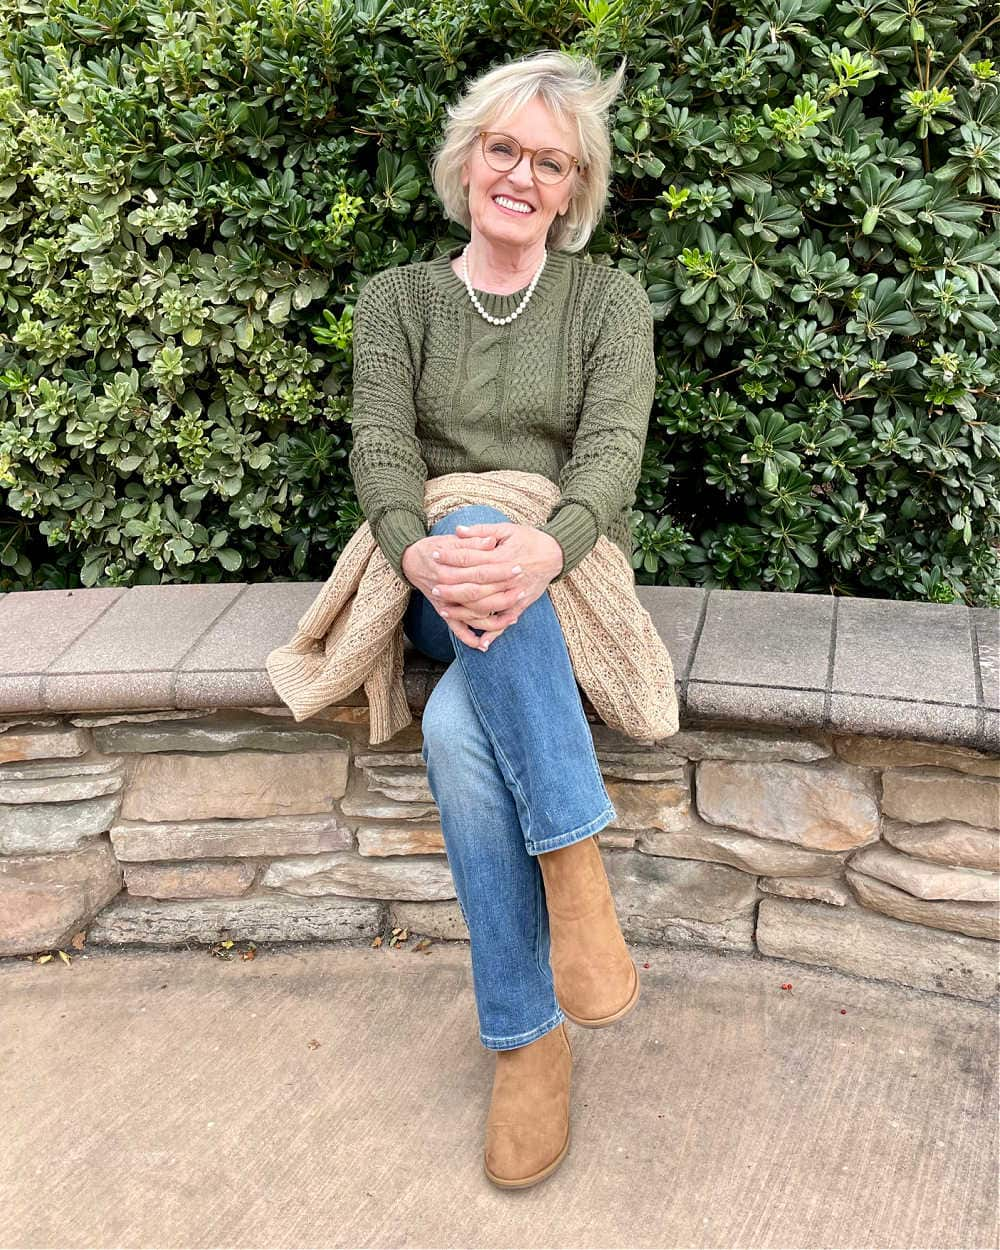 blonde woman sitting on wall wearing green cable sweater and blue jeans from Walmart